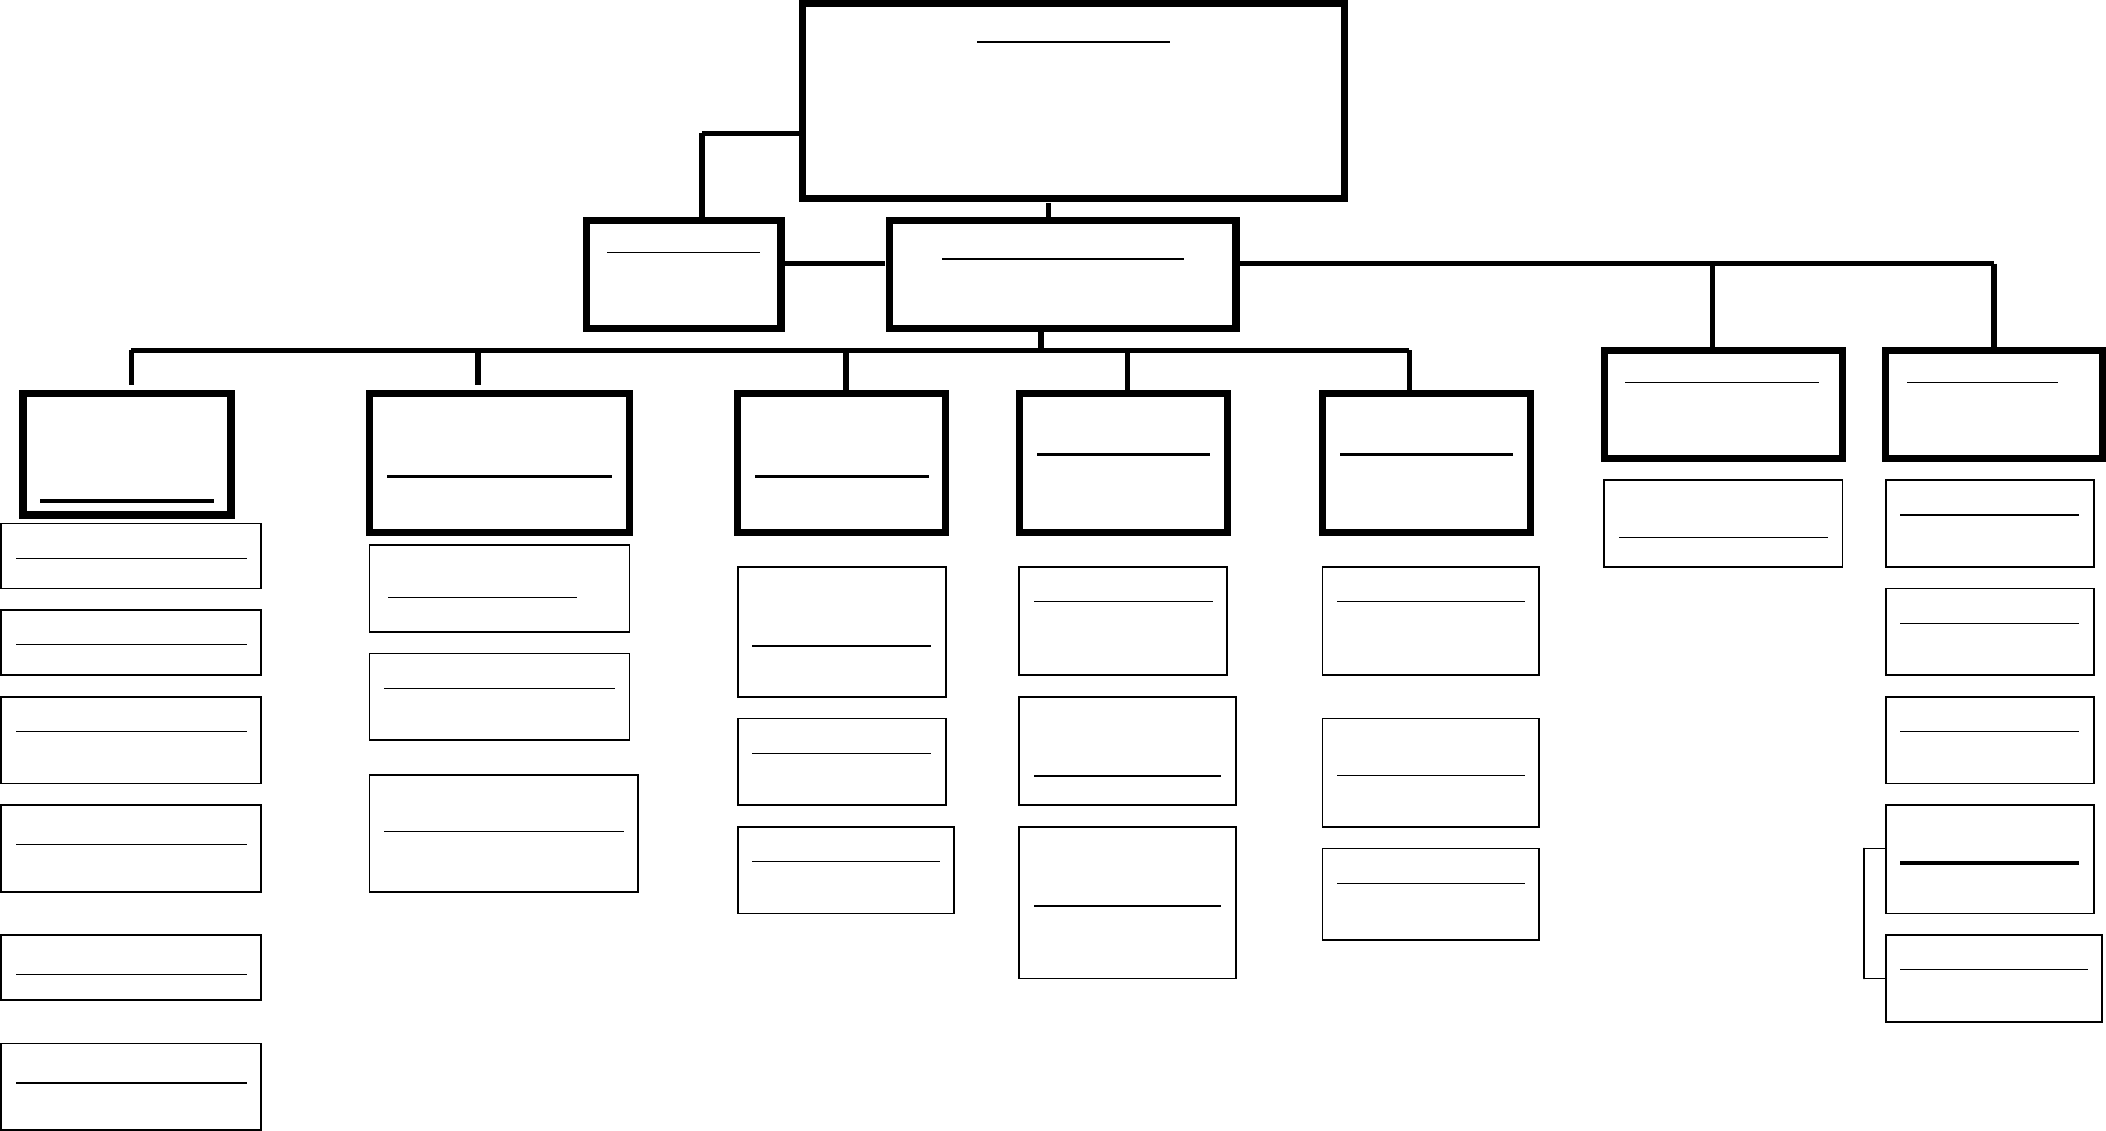 organigram template - blank organizational chart cumberland college free download